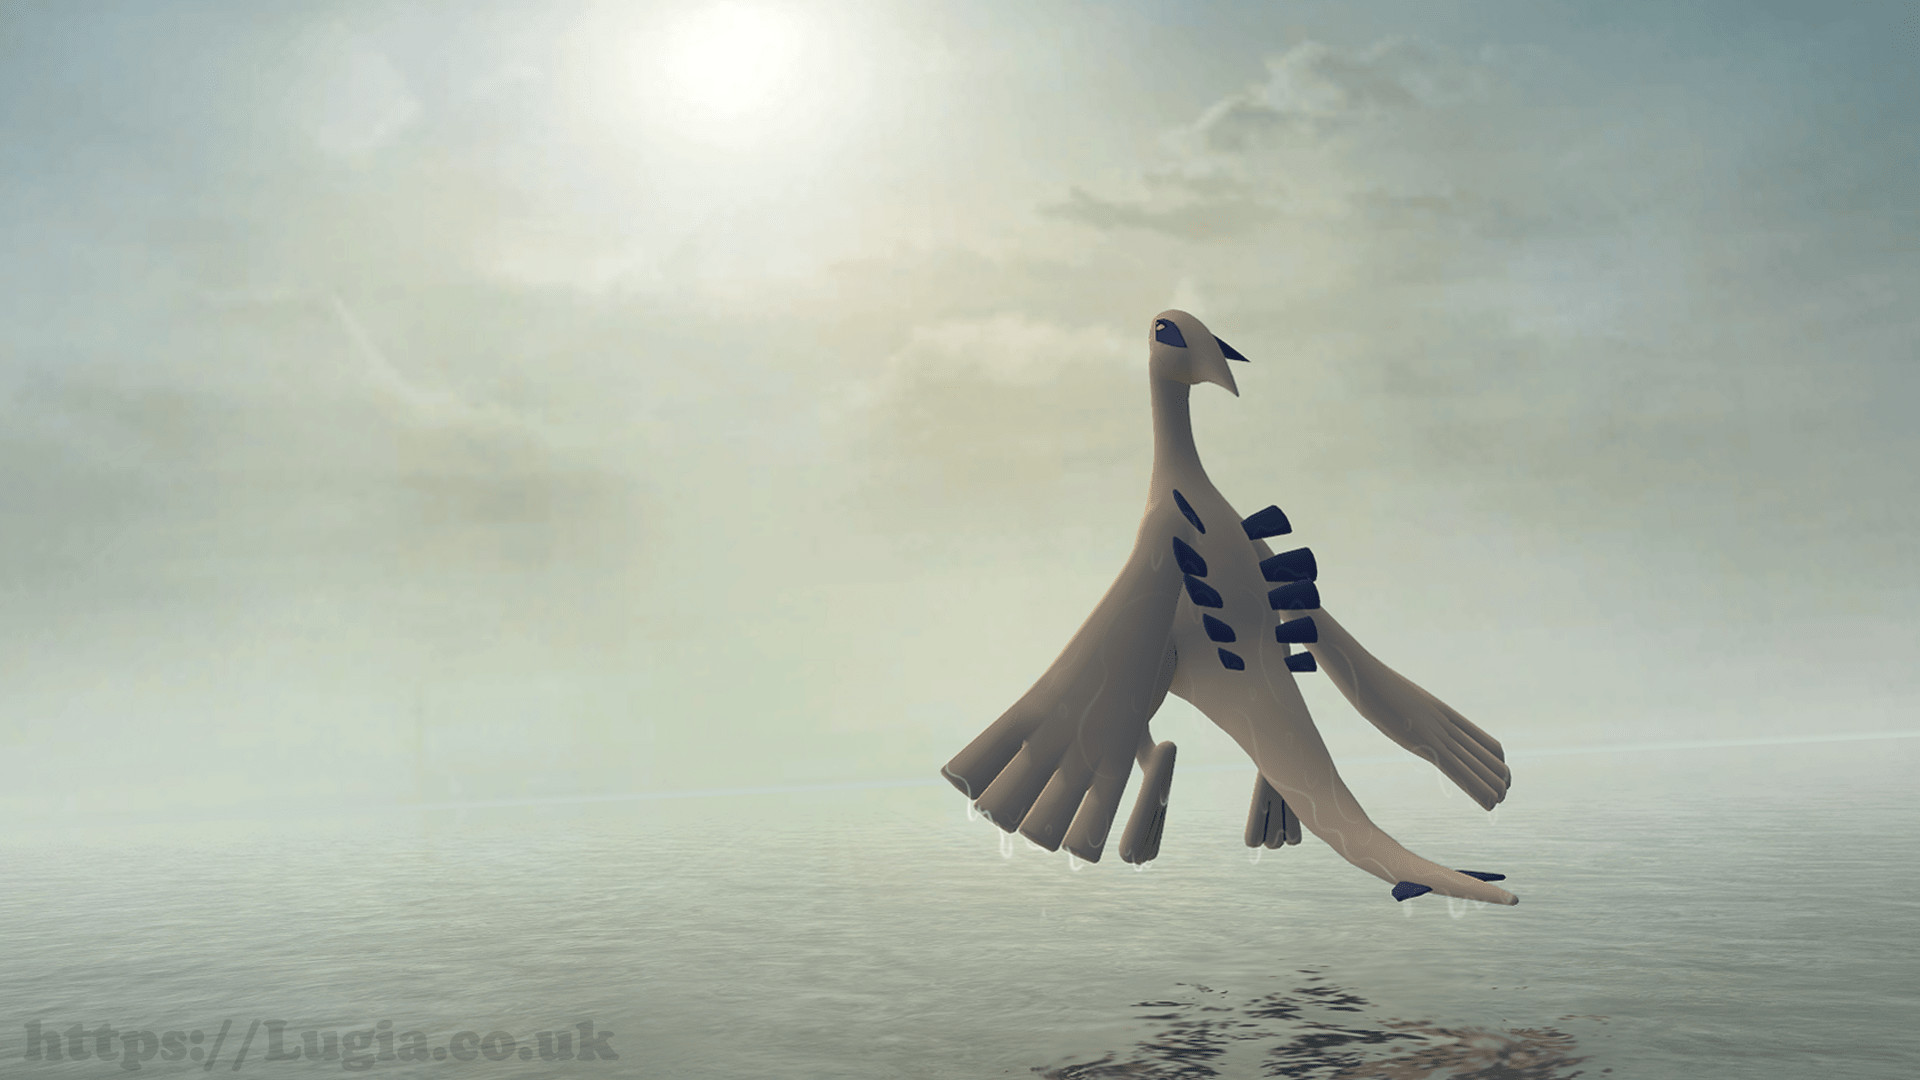 Res: 1920x1080, ... Pokemon.c The Sky Temple of Lugia and Articuno | Pok©mon Wallpaper